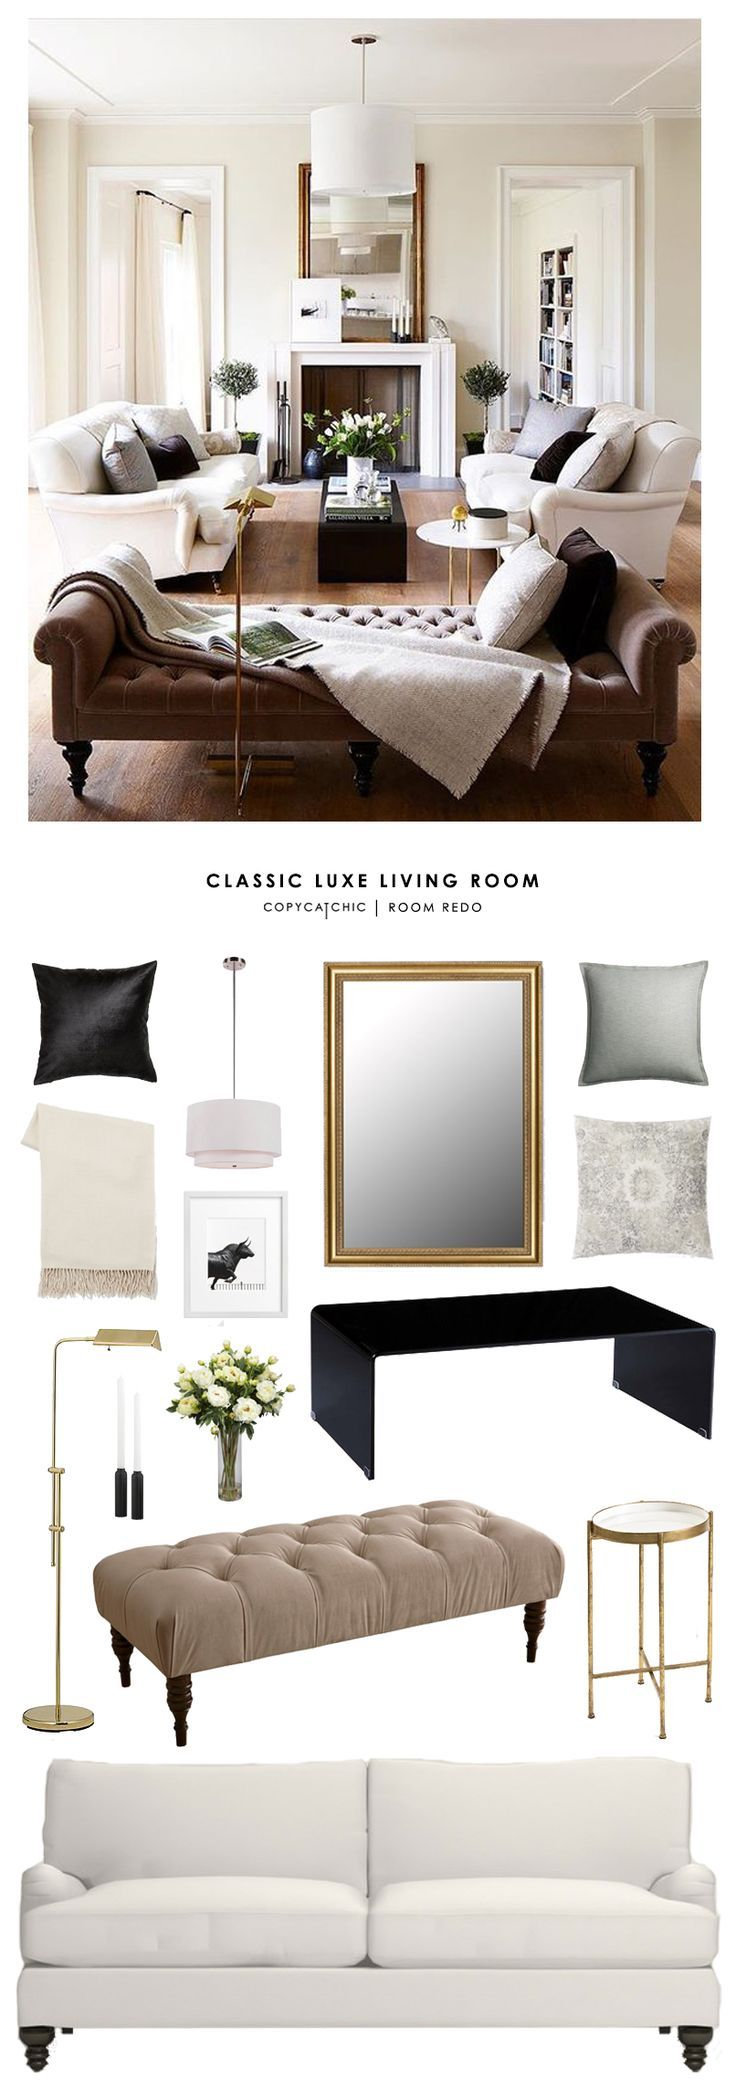 Designing Living Room On A Budget Copy Cat Chic Room Redo  Classic Luxe Living Room  Copy Cat Chic